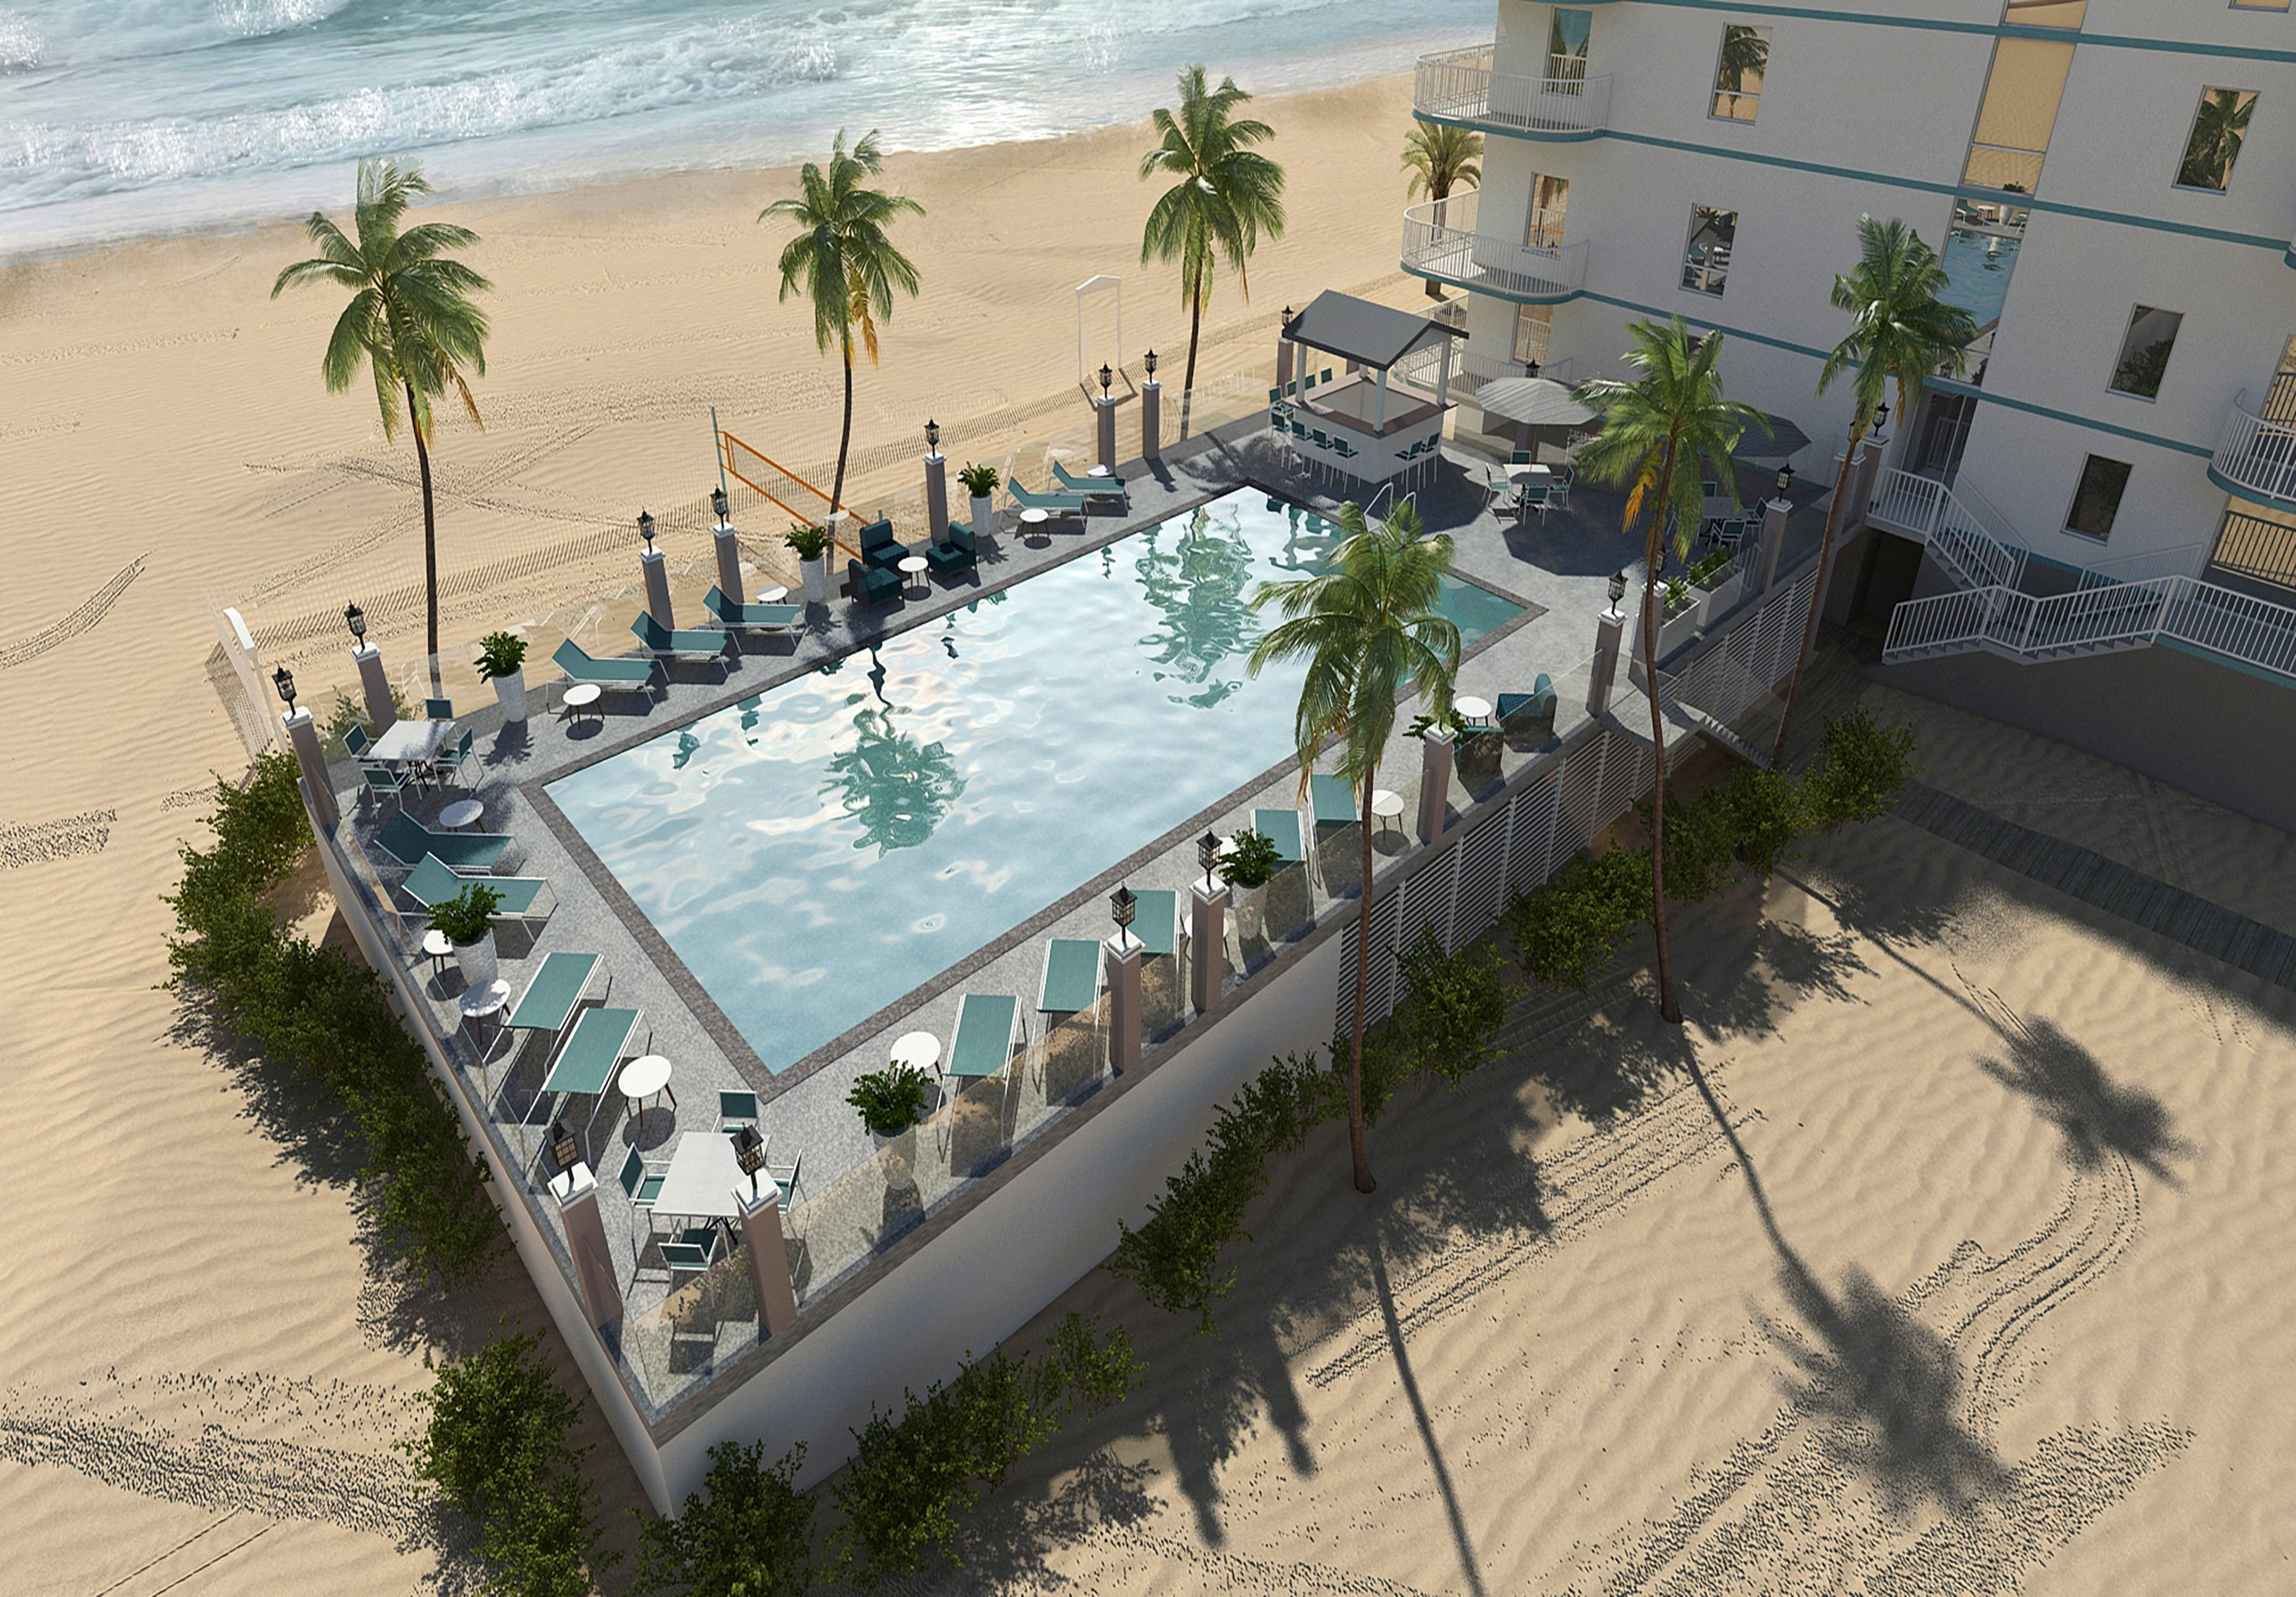 Doubletree By Hilton Welcomes Oceanfront Property In One Of Maryland S Most Loved Beach Towns Business Wire